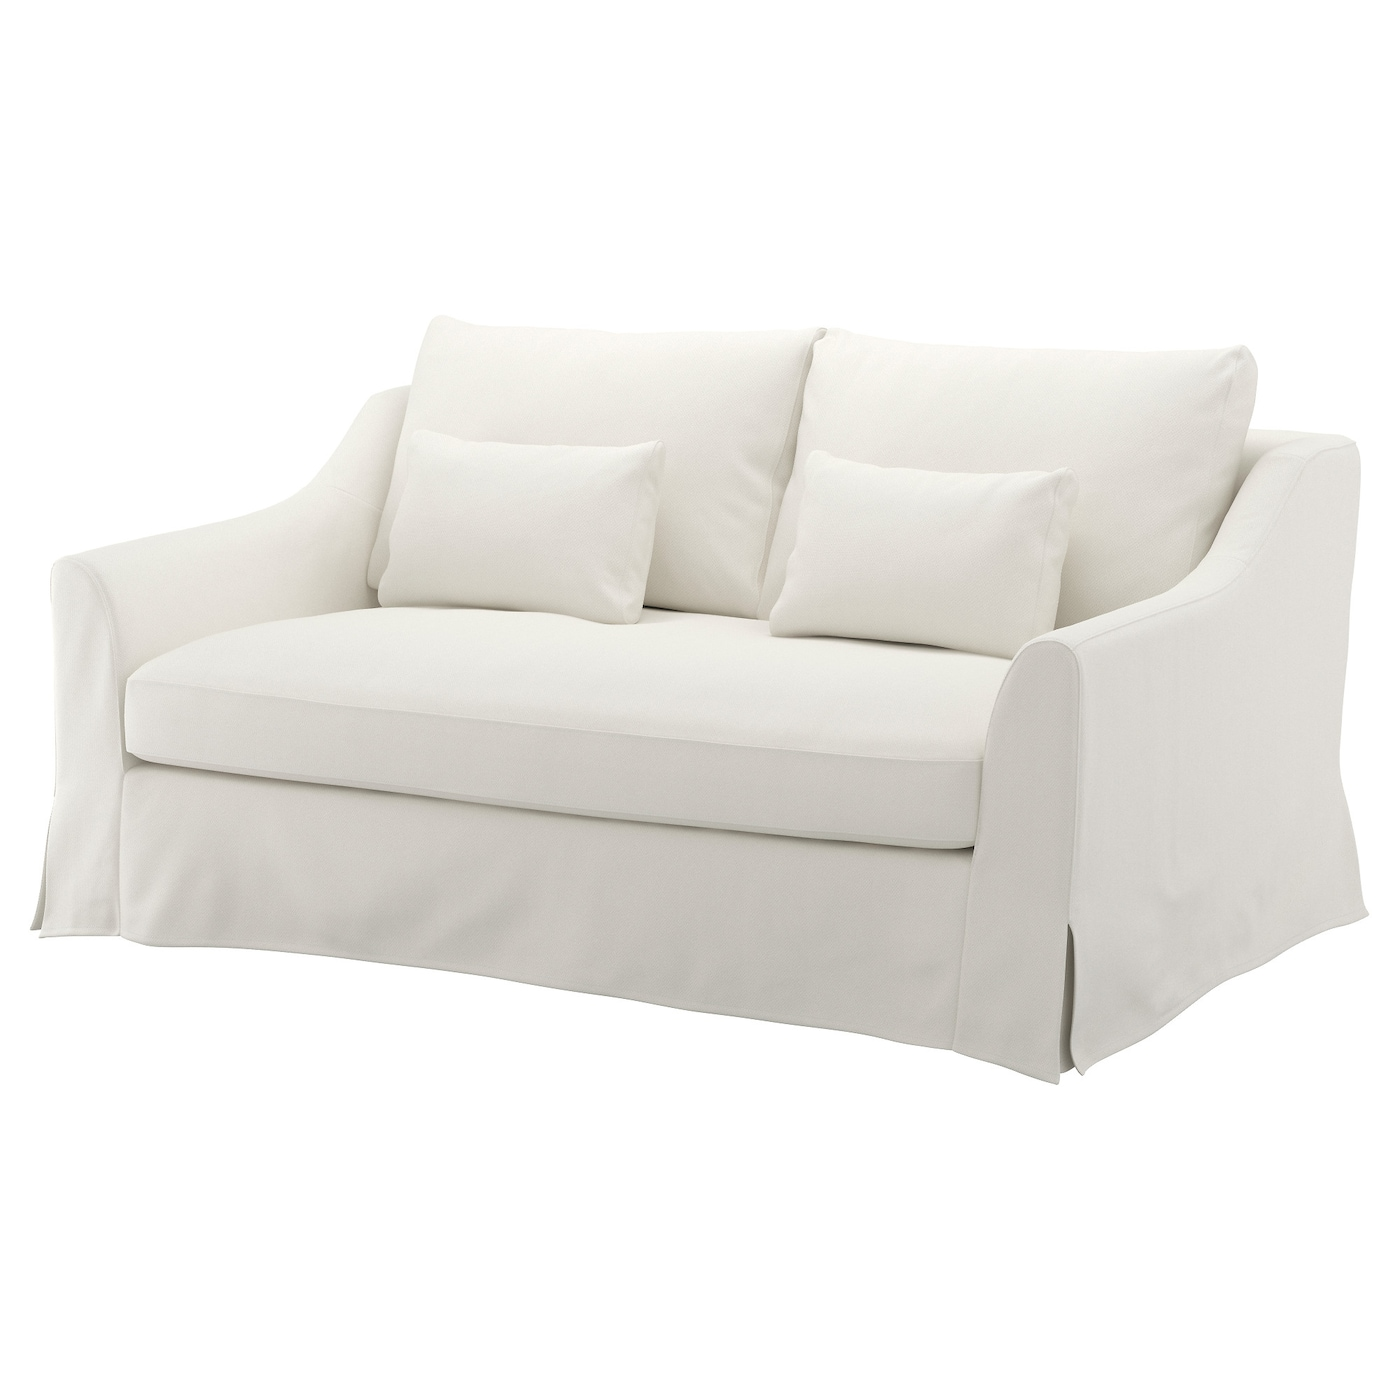 "F""RL–V Cover for 2 seat sofa Flodafors white IKEA"